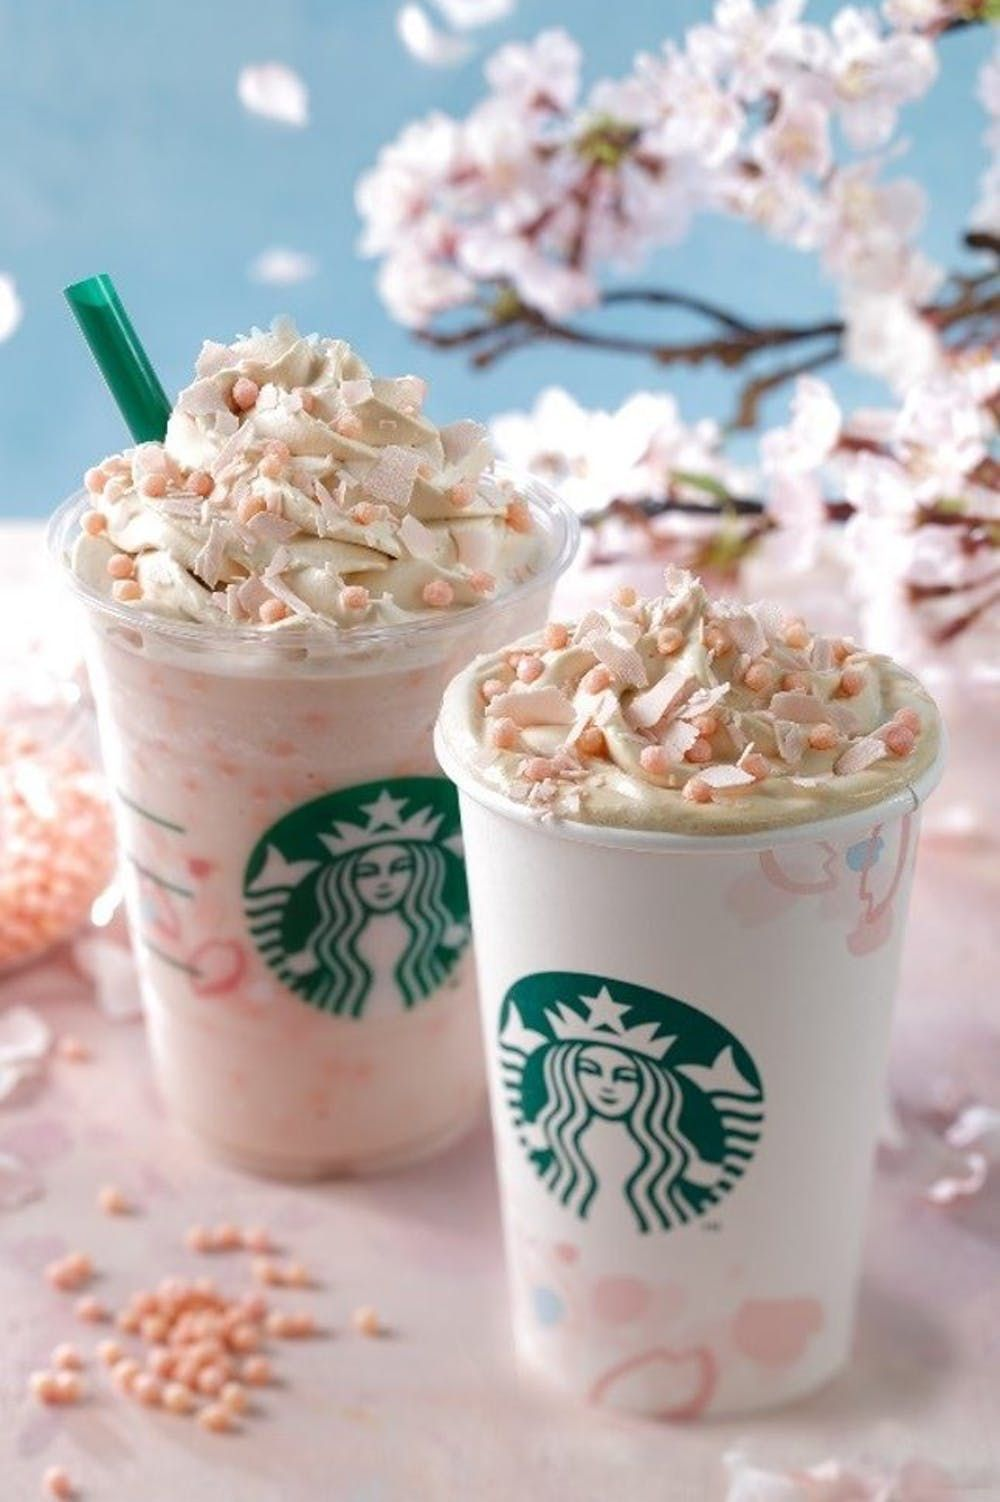 Starbucks Sakura Blossom Beverages Are As Gorgeous As Cherry Blossoms in Spring